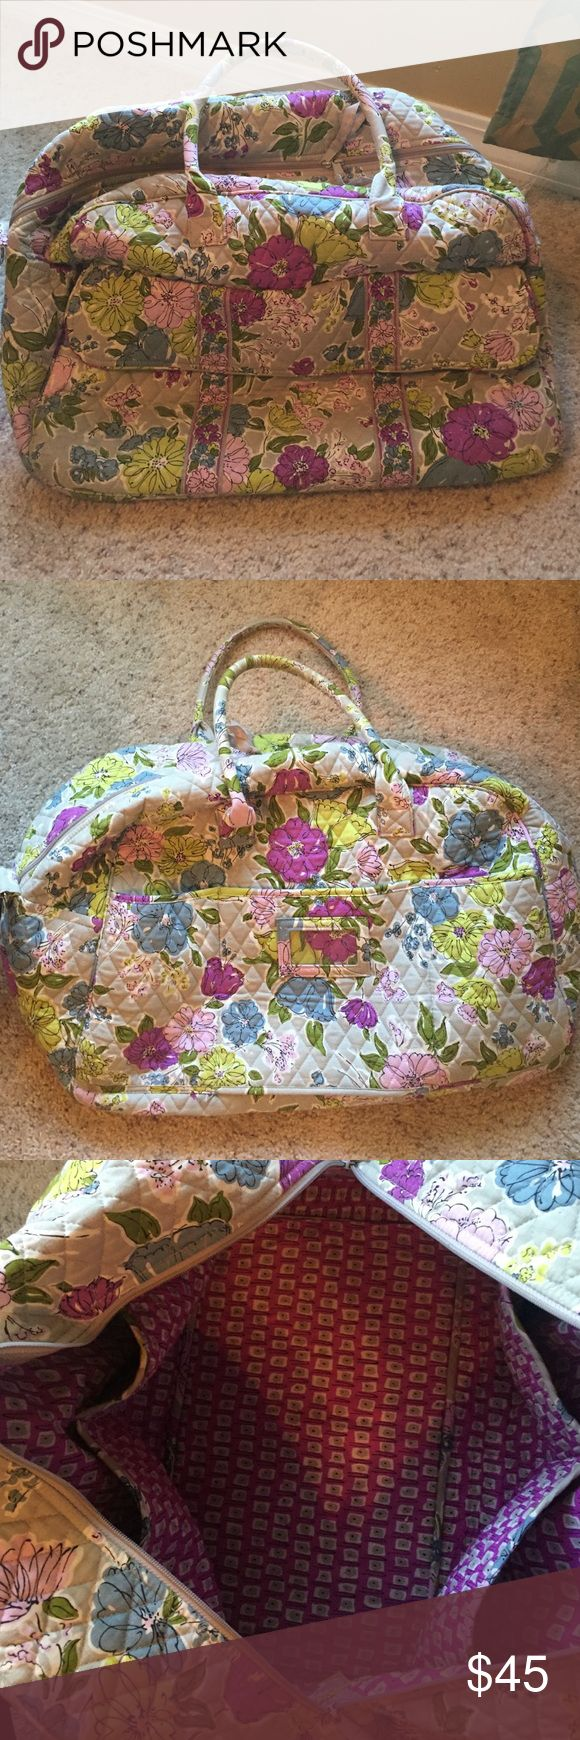 "Vera Bradley watercolor weekender travel bag Vera Bradley 'weekender' travel bag in watercolor pattern. Pattern is now retired! Excellent bag with no signs of wear. Lots of storage! Missing the long strap for shoulder. 19"" wide 14"" tall. Price negotiable. No trades. Vera Bradley Bags Travel Bags"